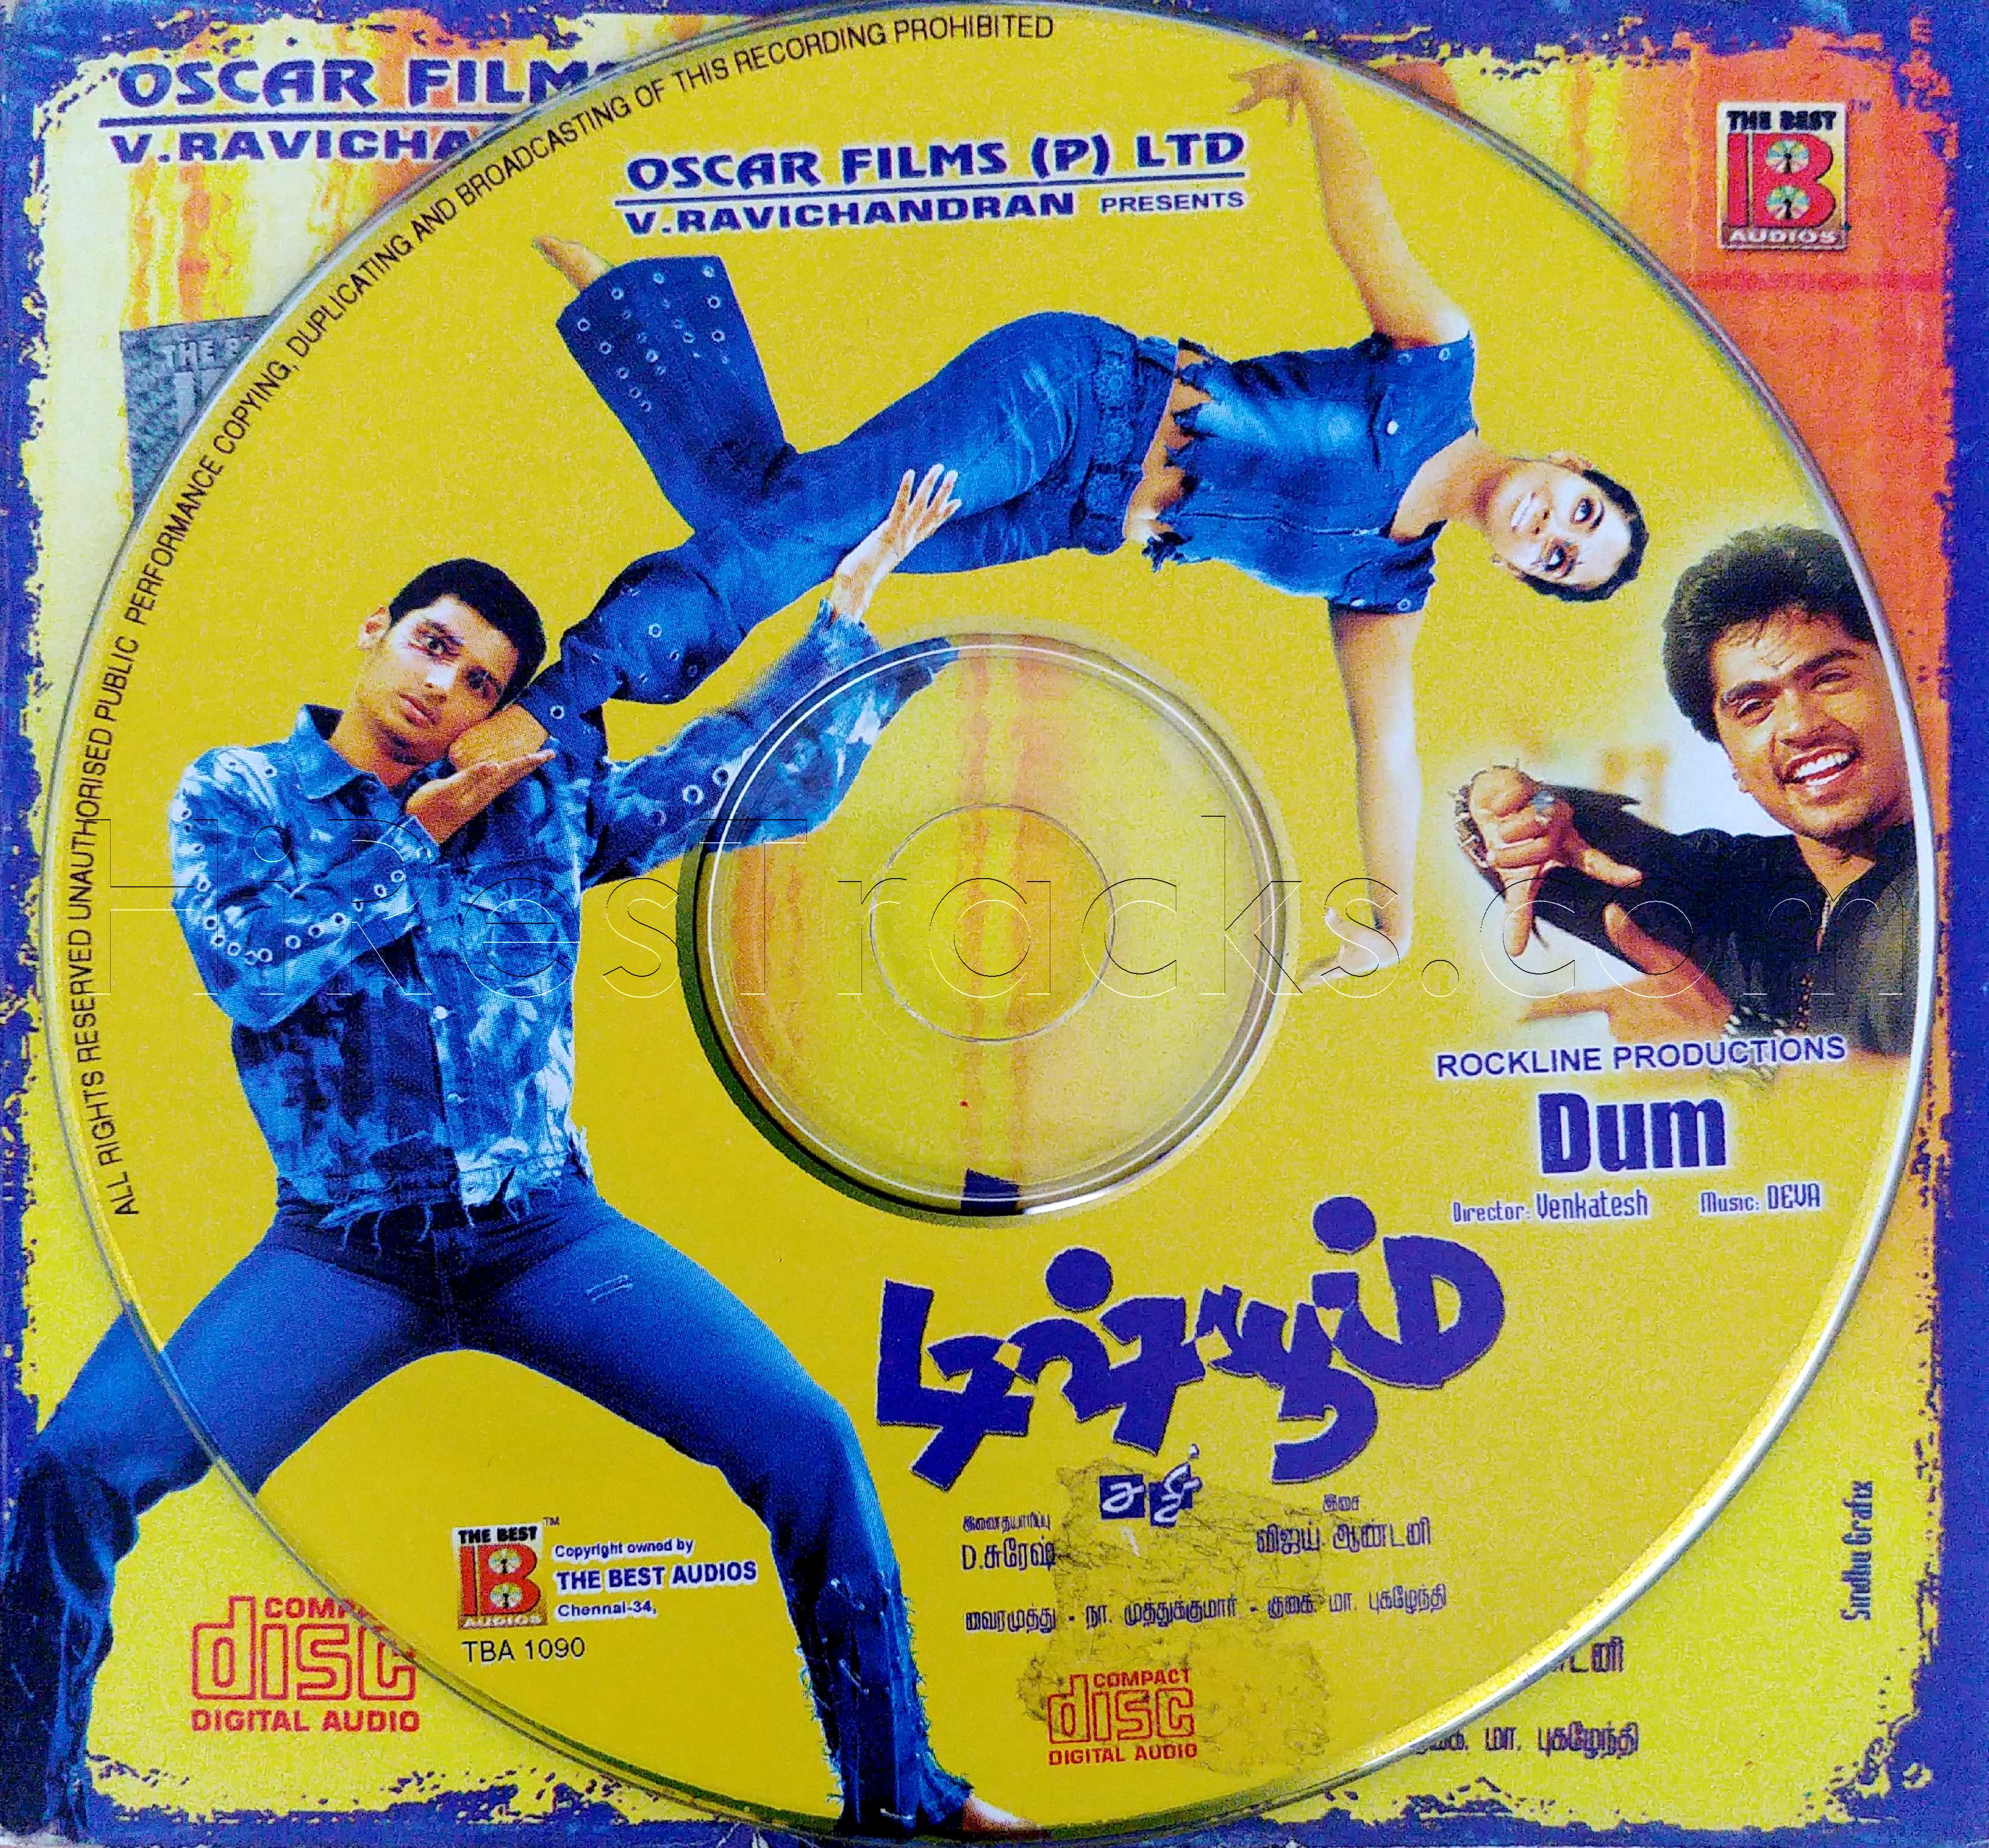 Dishyum (2006) (Vijay Antony) (The Best Audios) [ACD-RIP-WAV]